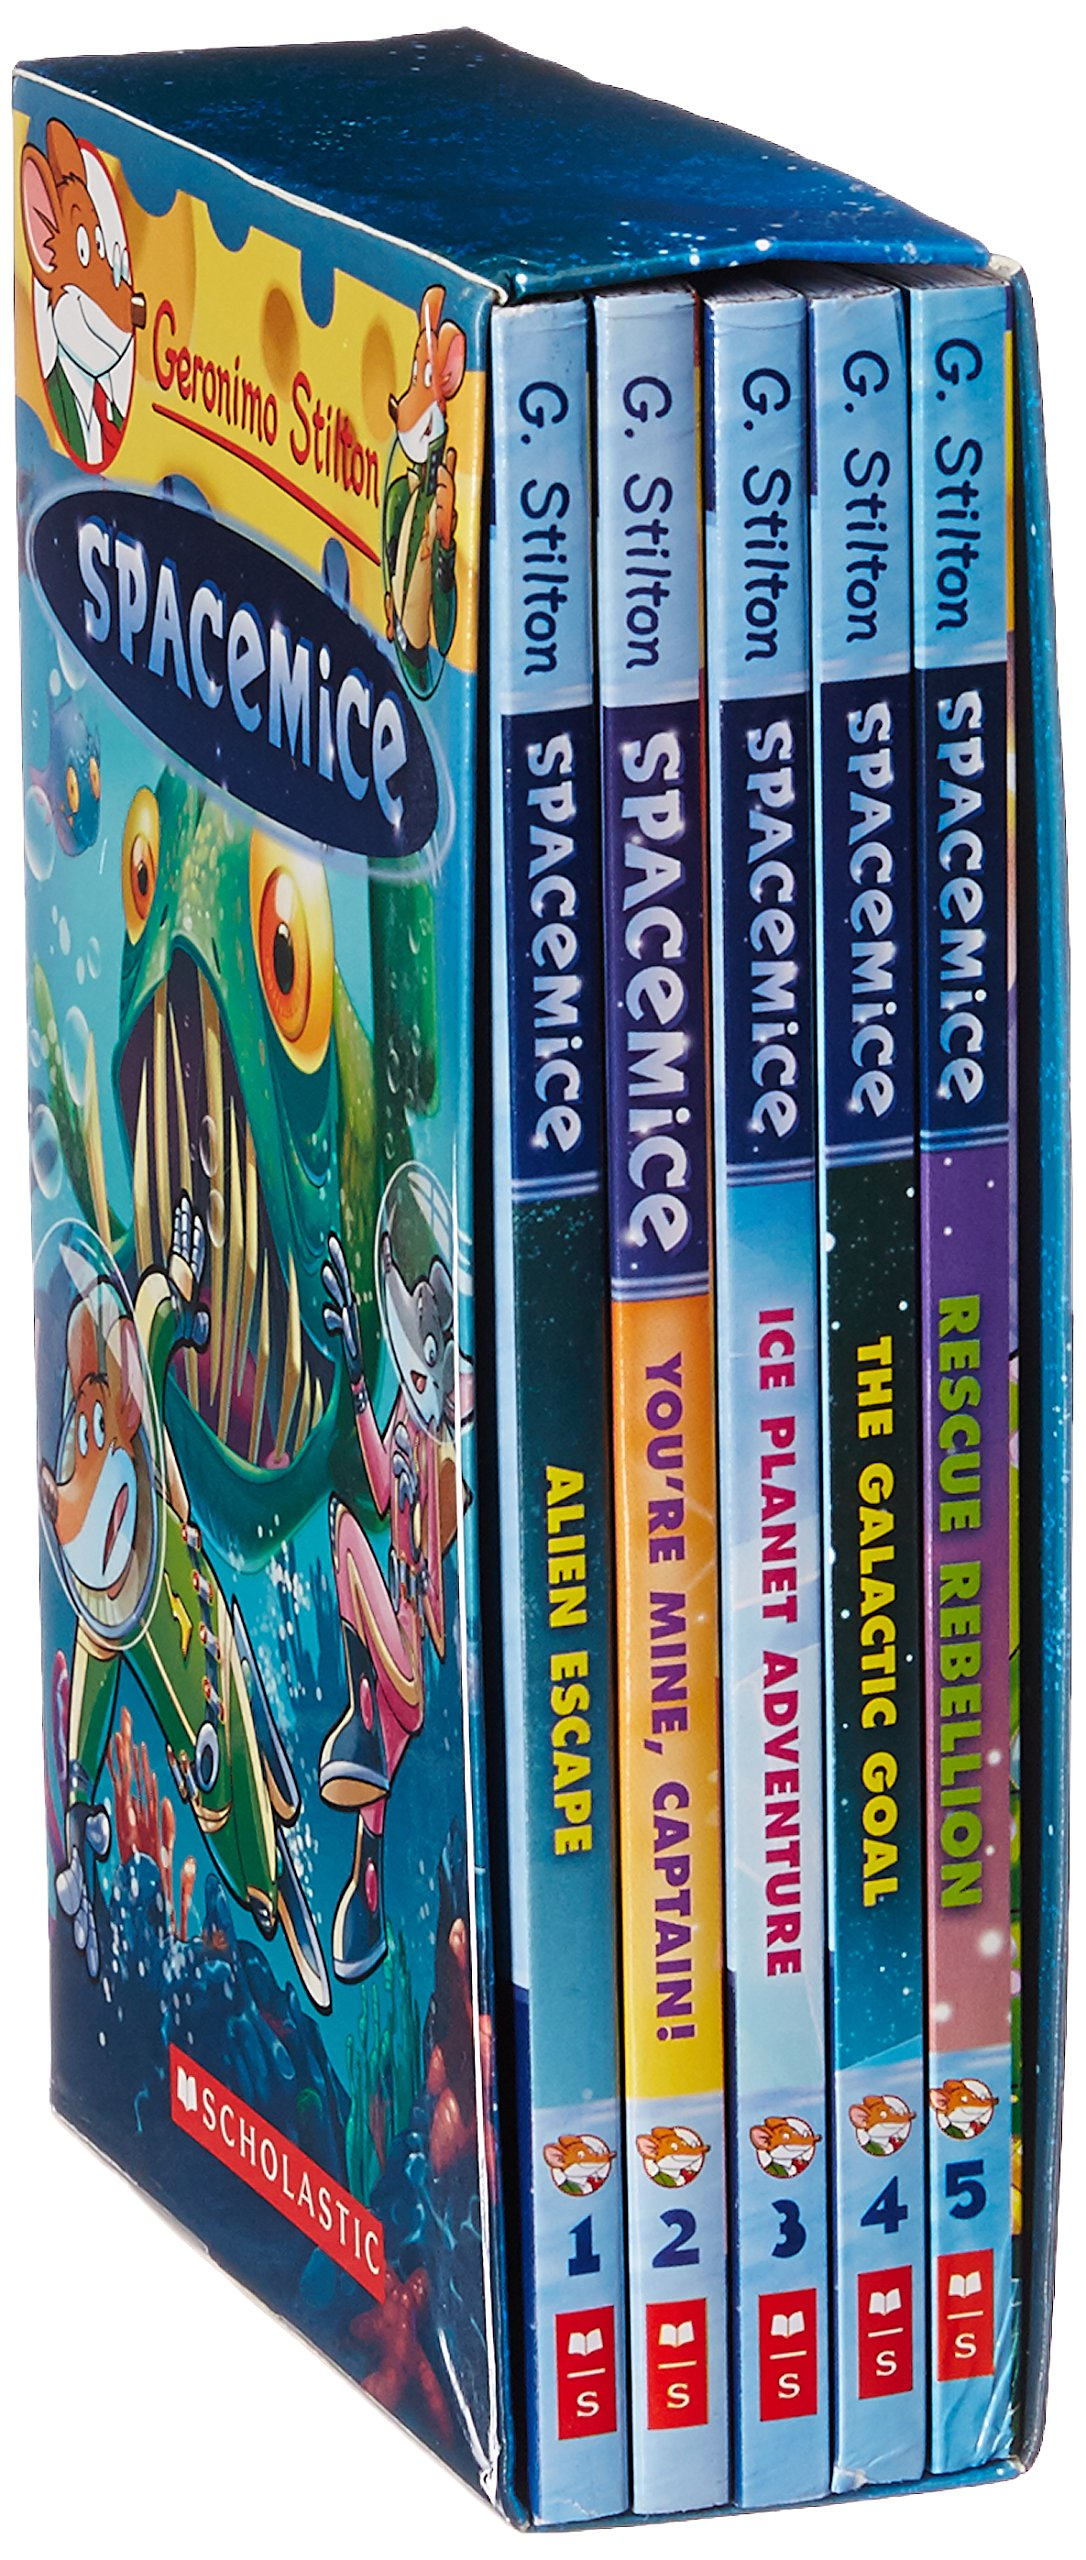 Geronimo Stilton -Spacemice Slip-Case Set pdf epub